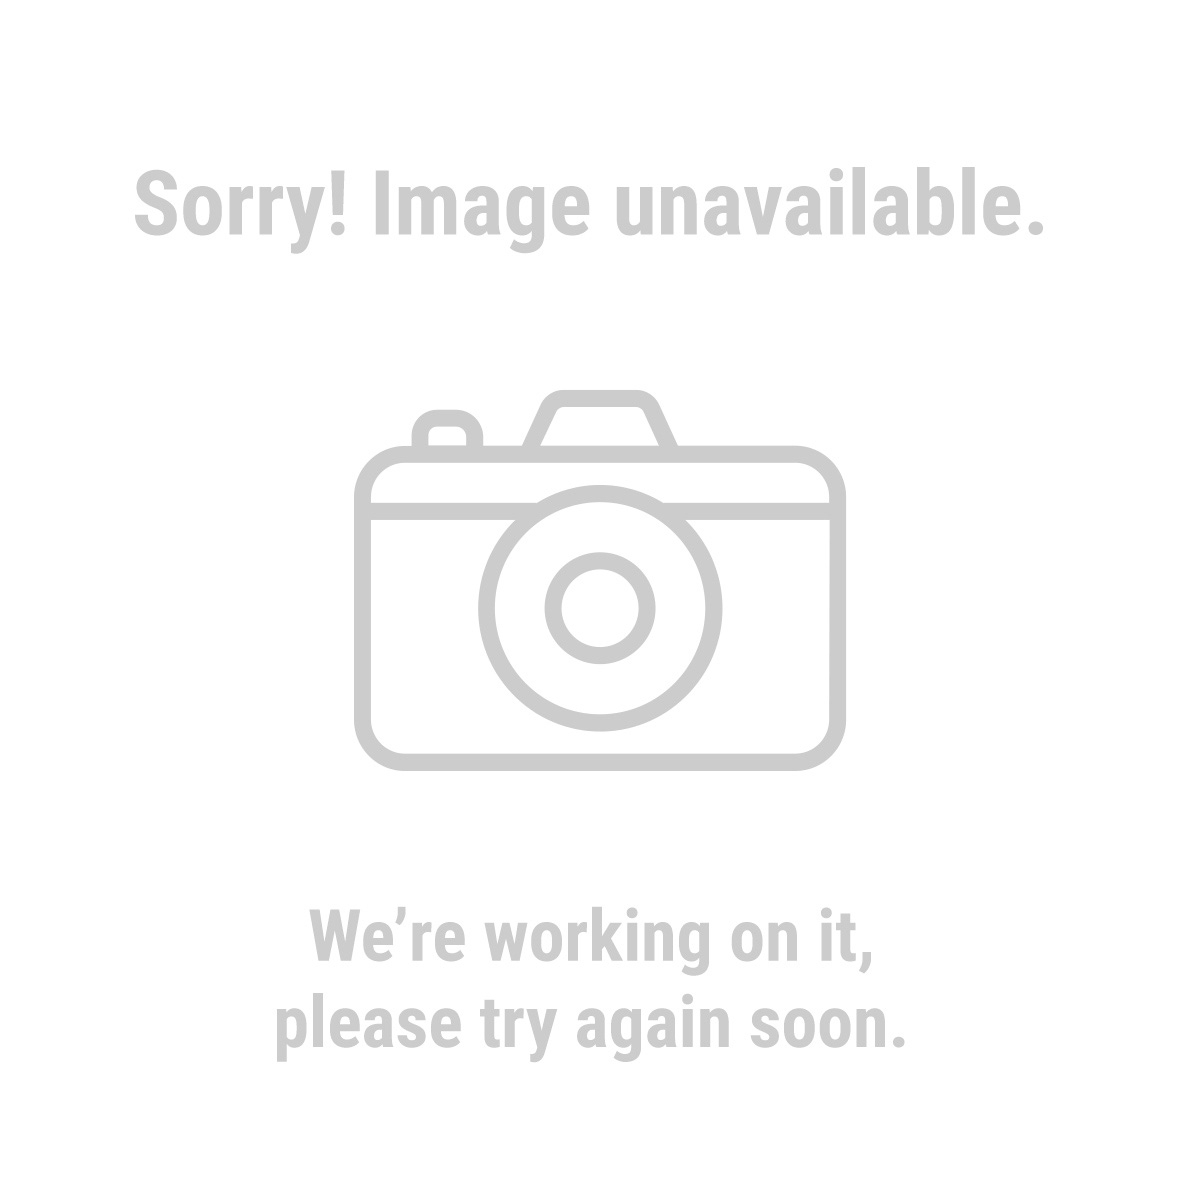 Chicago Electric Welding 68888 70 Amp Arc Welder